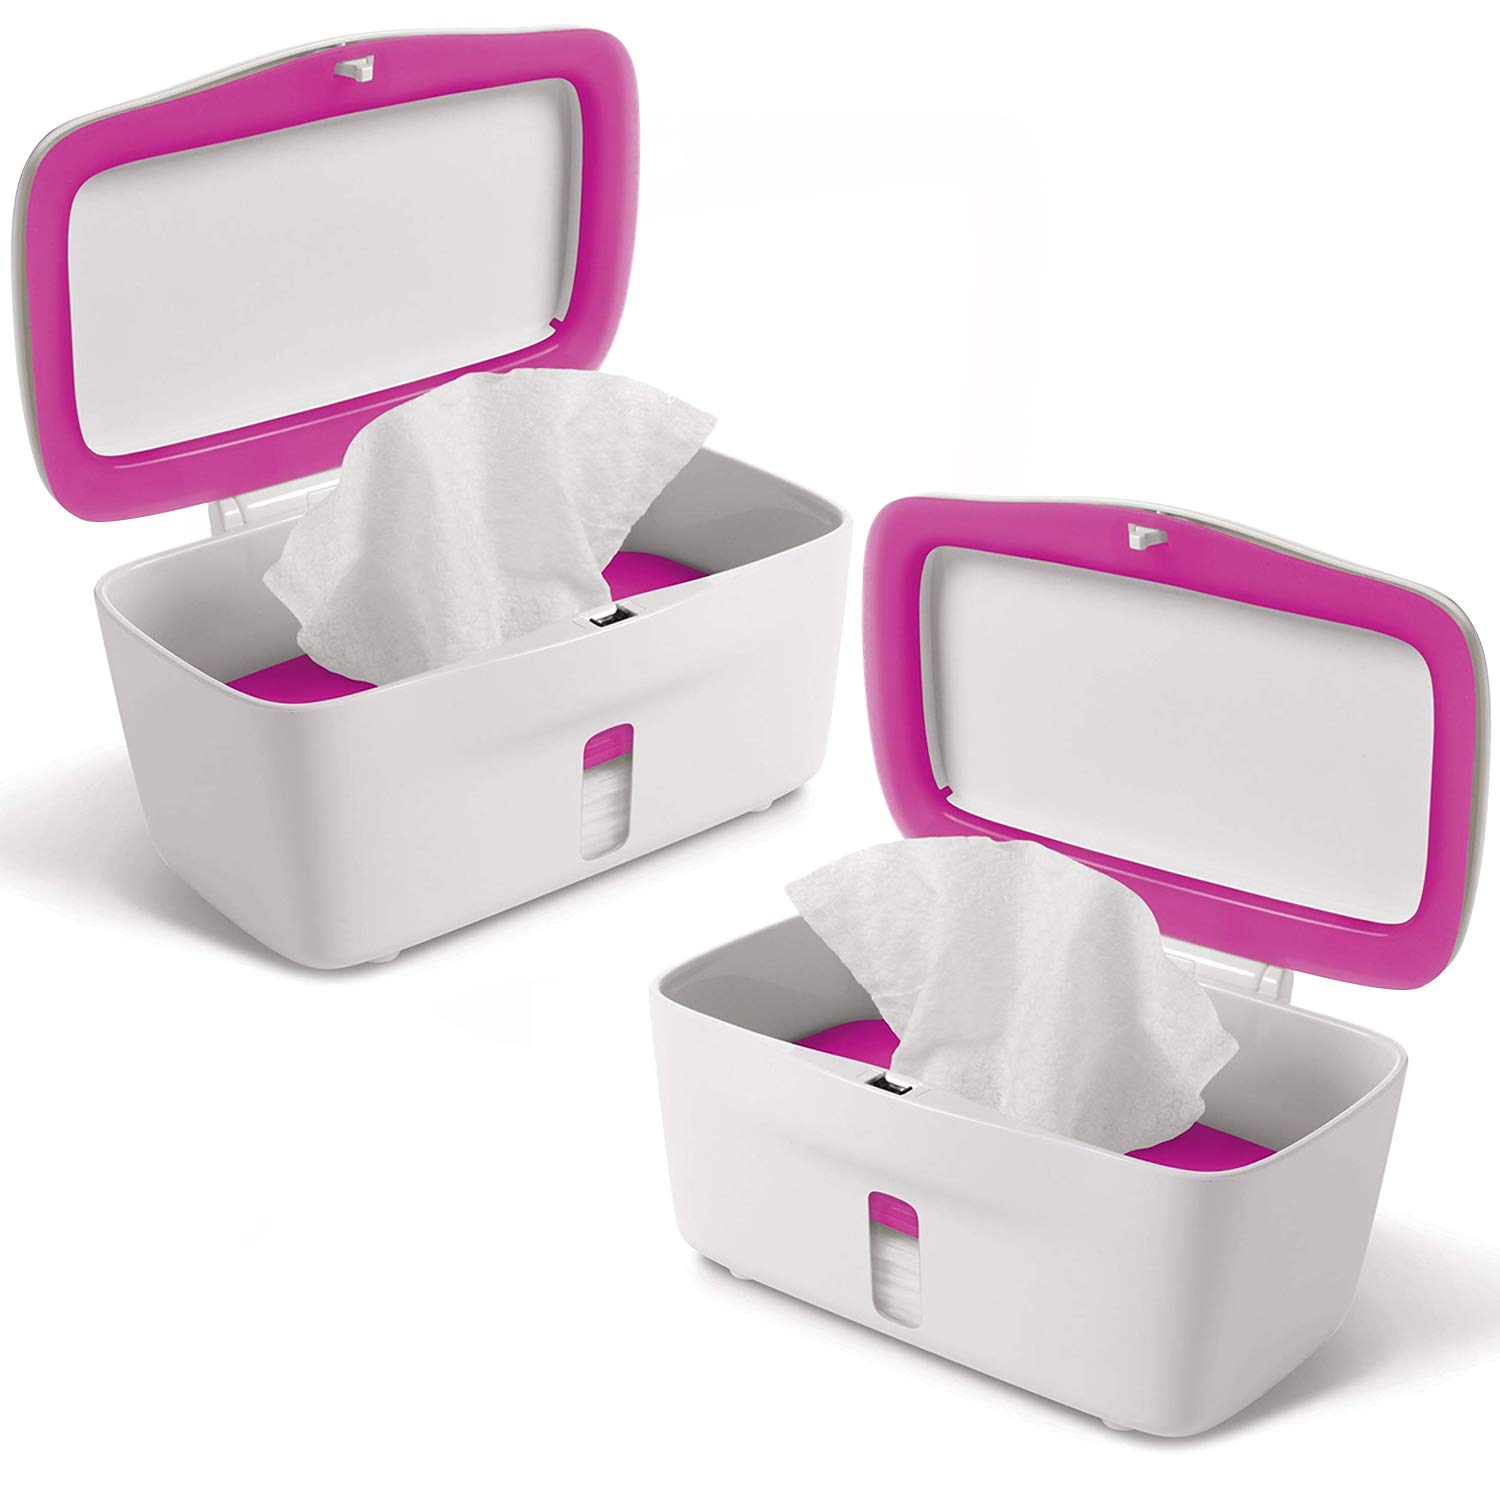 OXO TOT Perfect Pull Baby Wipes Dispenser, Pink - Set of 2 Diaper Wipe Holders by OXO